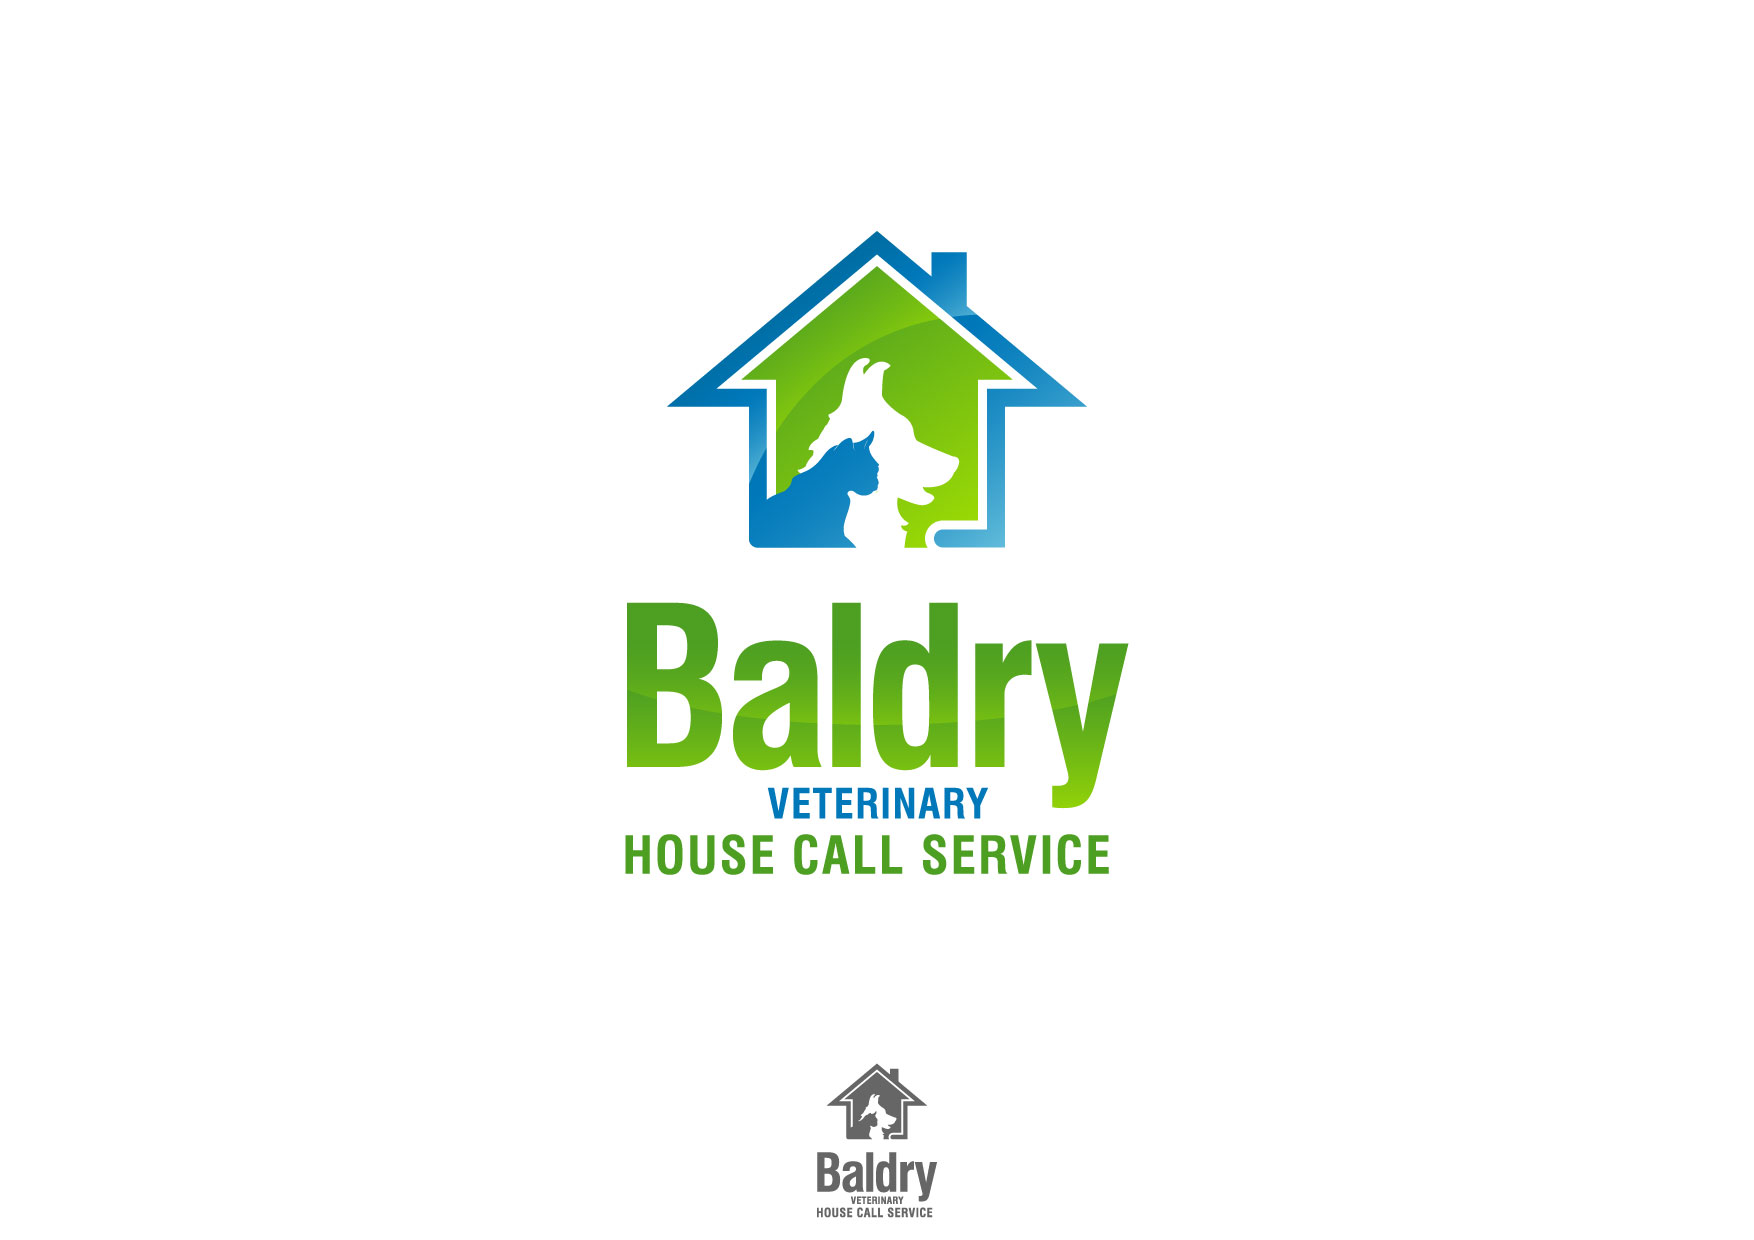 Logo Design by Nurgalih Destianto - Entry No. 167 in the Logo Design Contest Captivating Logo Design for Baldry Veterinary House Call Service.